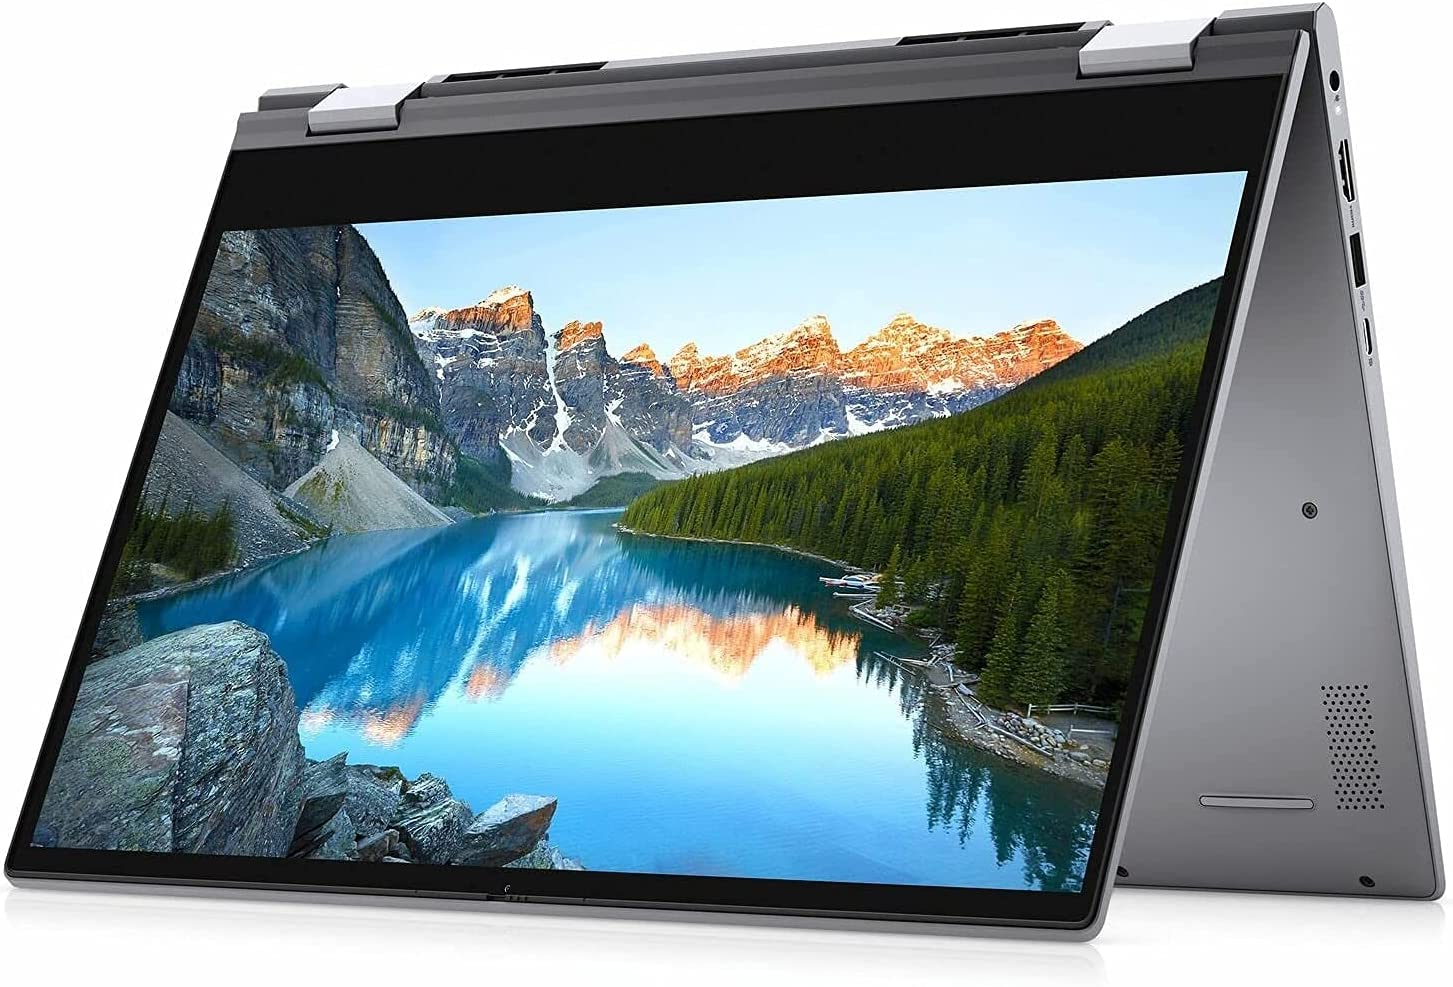 Dell Inspiron 5406 2-in-1 Laptop, 14